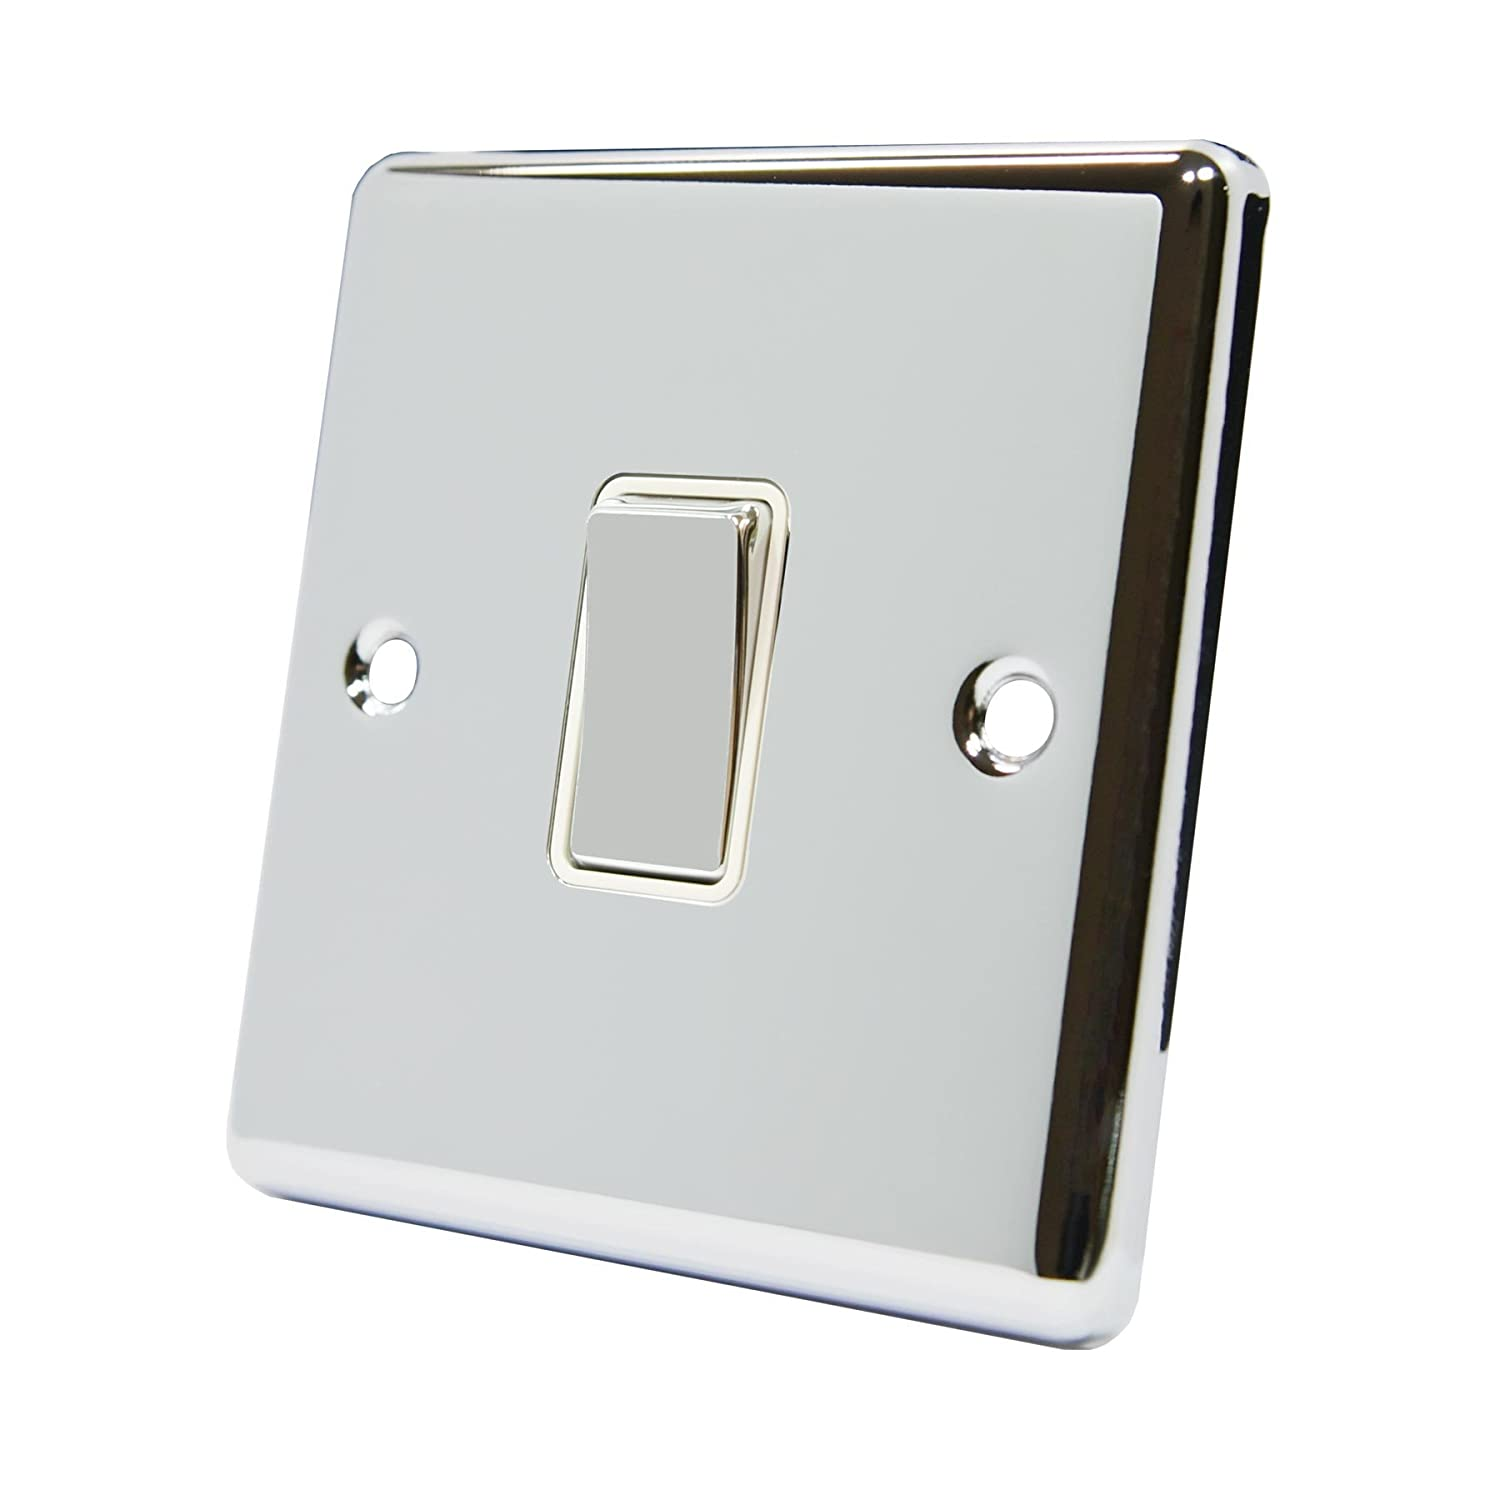 A5 Products SWI1GCCWC 10 A 2 Way Single Gang Light Switch - Chrome A5 Products UK